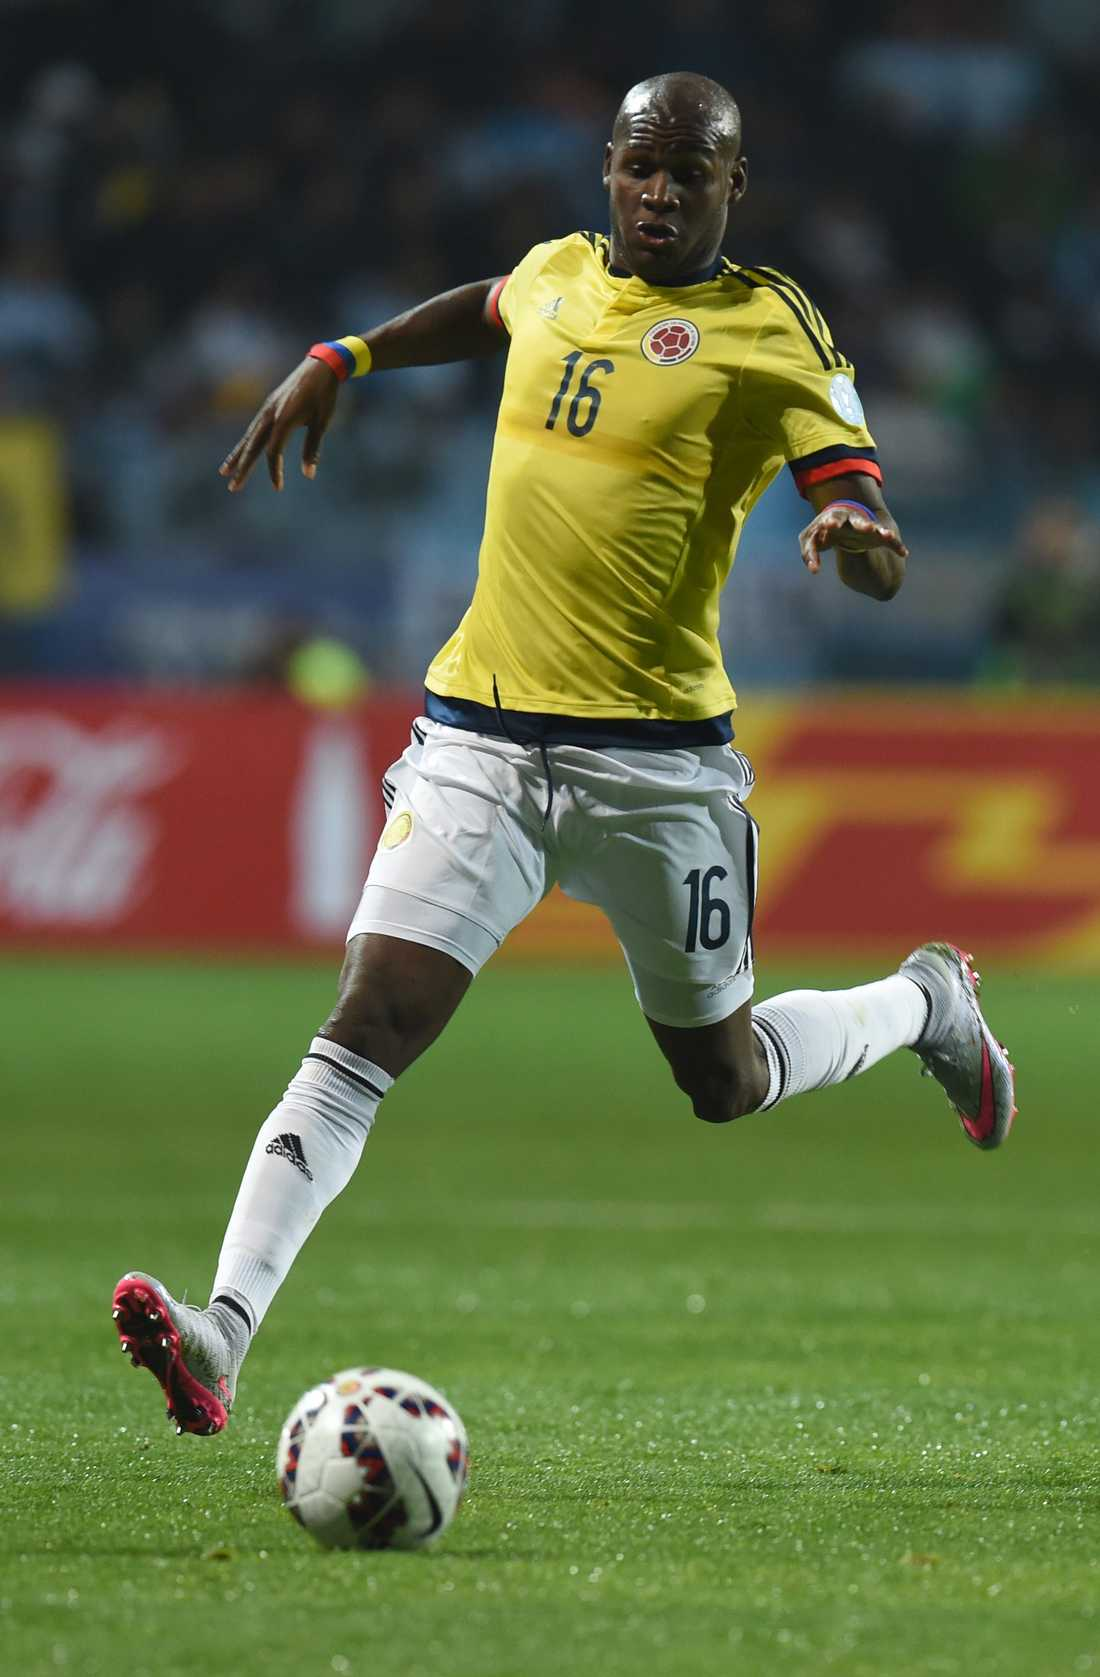 Victor Ibarbo.